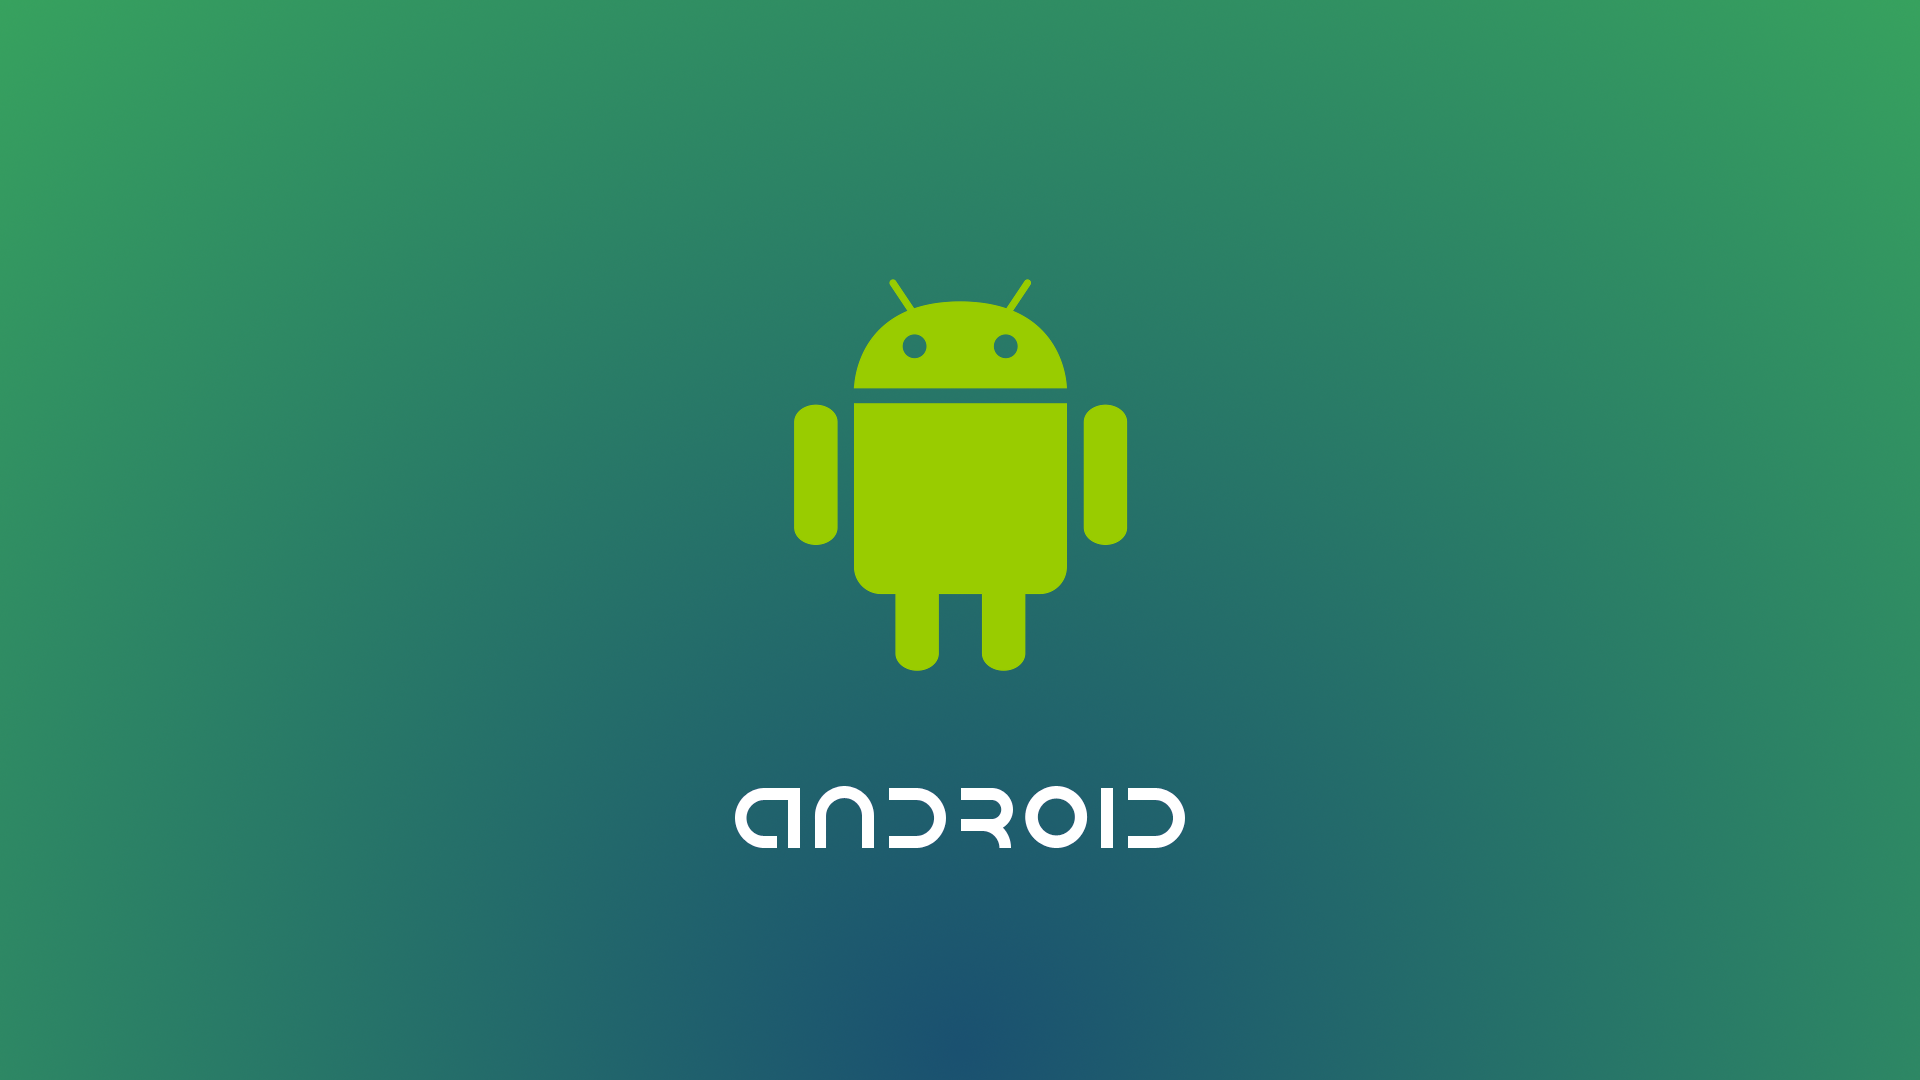 What is the best way to learn Android programming at beginner level